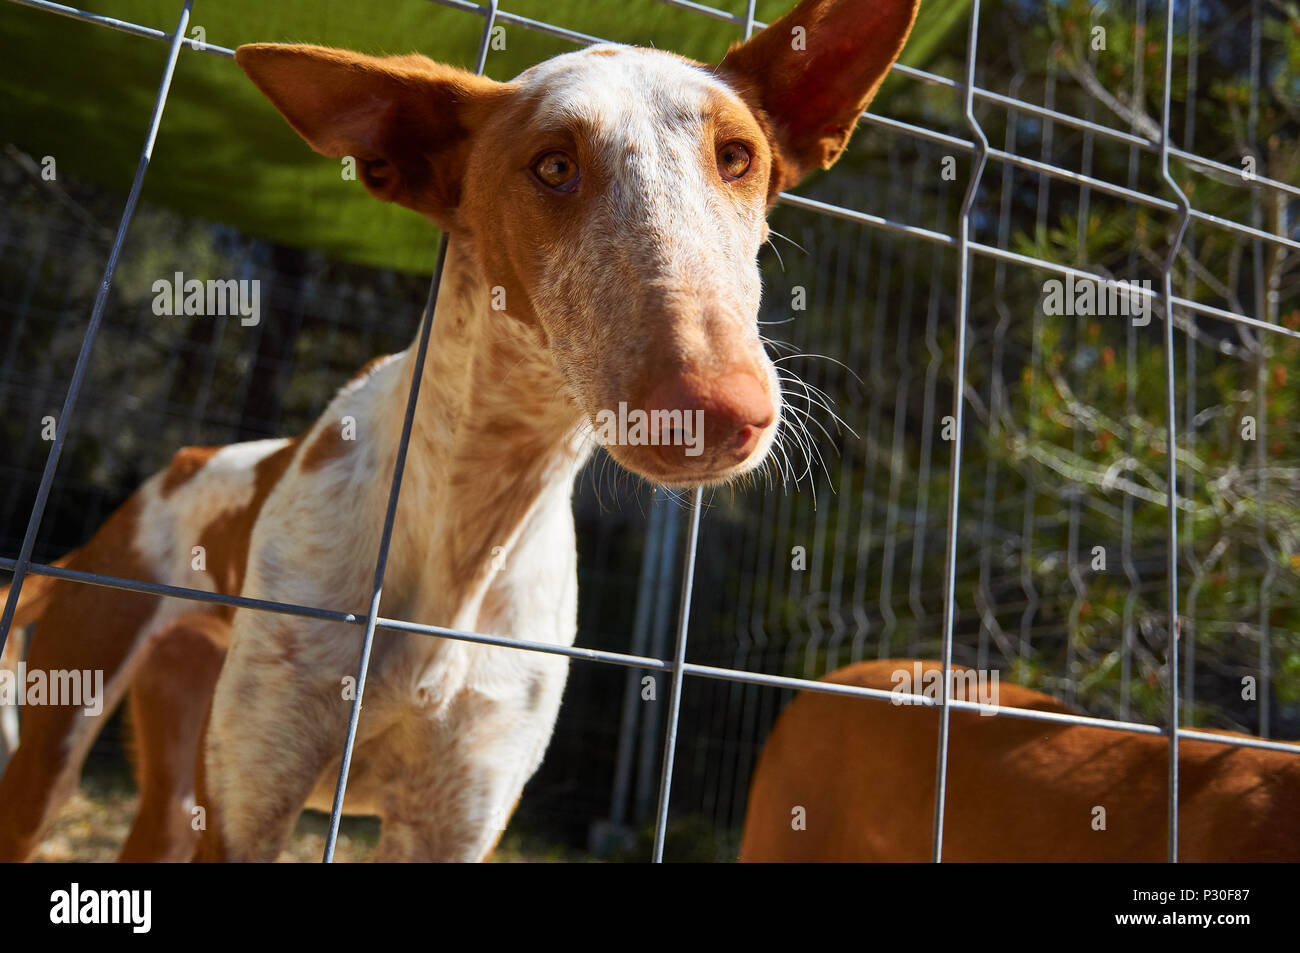 An Ibizan Hound sticking his head out through a fence in Formentera (Balearic Islands, Spain) - Stock Image